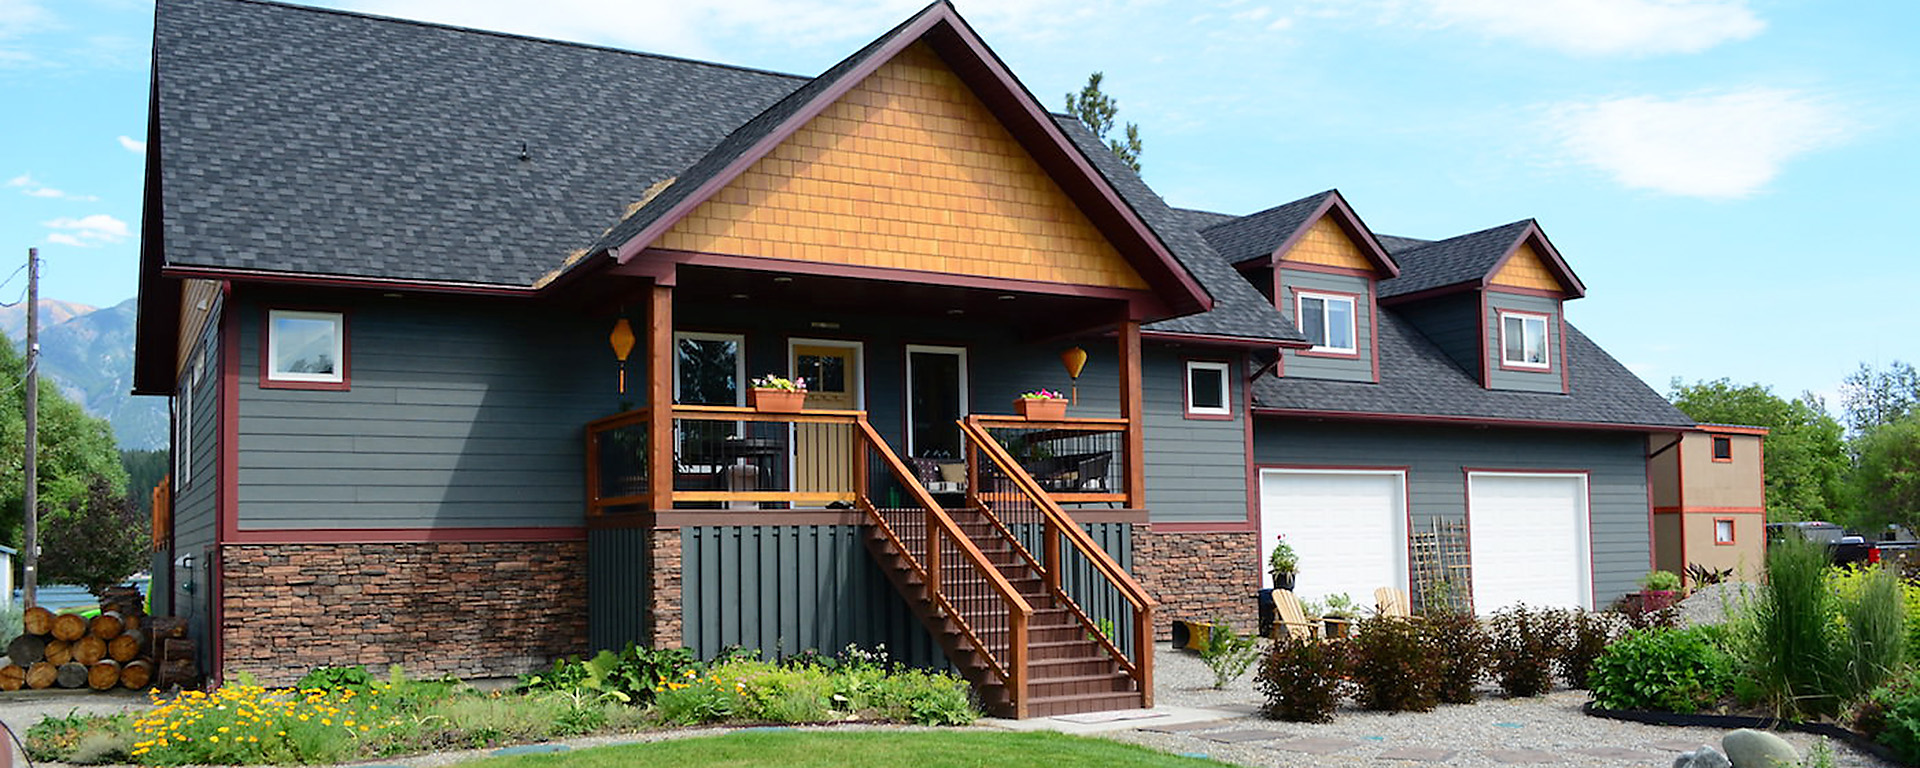 Home built by Steeples Construction